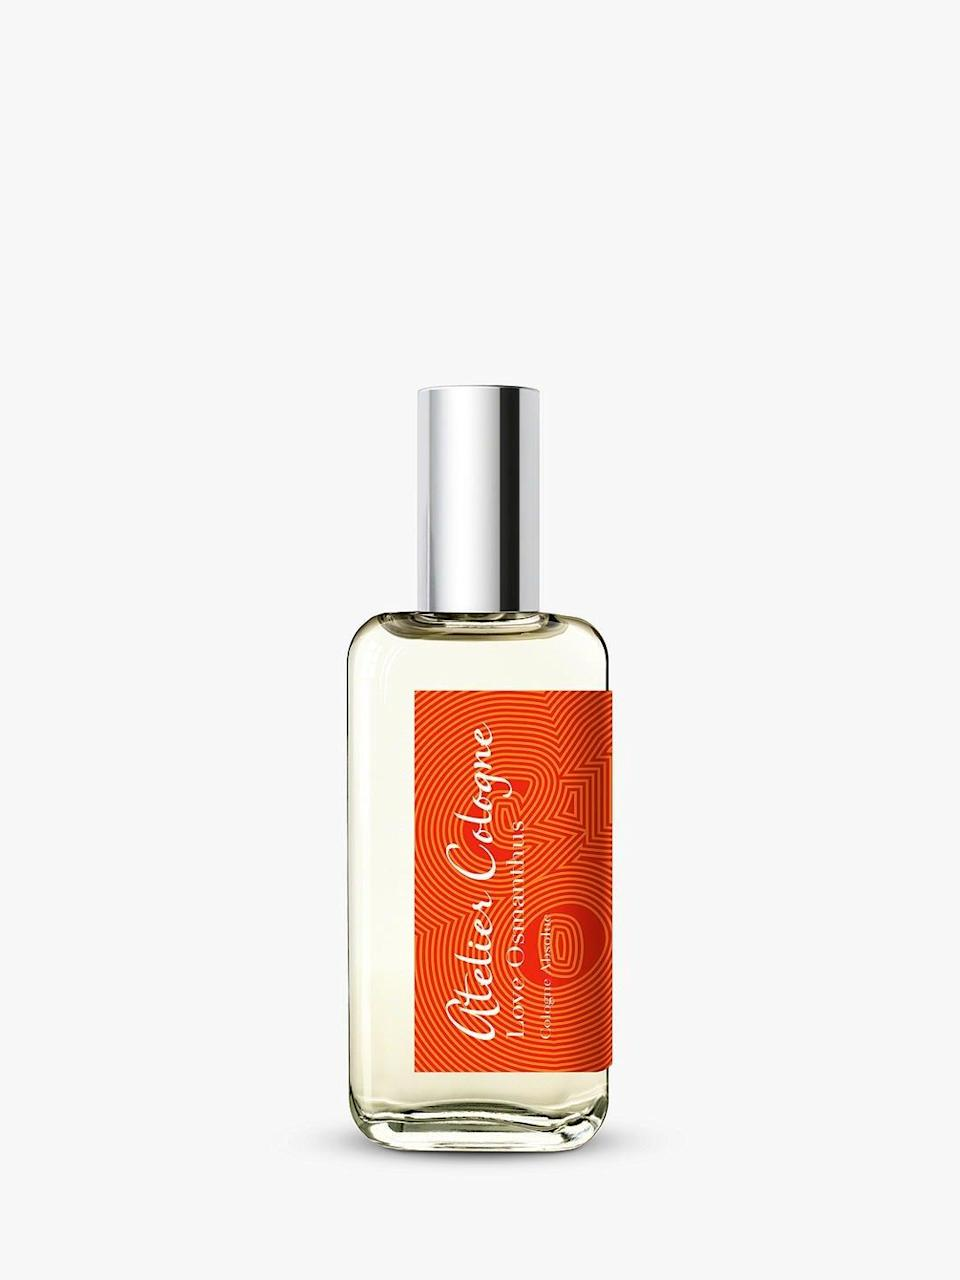 """Lemon is the most discernible note at first, evoking summertime memories, but this fragrance becomes hazy and sultry thanks to osmanthus flower, which radiates black tea and spiced plum.<br><br><strong>Atelier Cologne</strong> Love Osmanthus Cologne Absolue, $, available at <a href=""""https://www.johnlewis.com/atelier-cologne-love-osmanthus-cologne-absolue/p5135039?size=30ml"""" rel=""""nofollow noopener"""" target=""""_blank"""" data-ylk=""""slk:John Lewis"""" class=""""link rapid-noclick-resp"""">John Lewis</a>"""